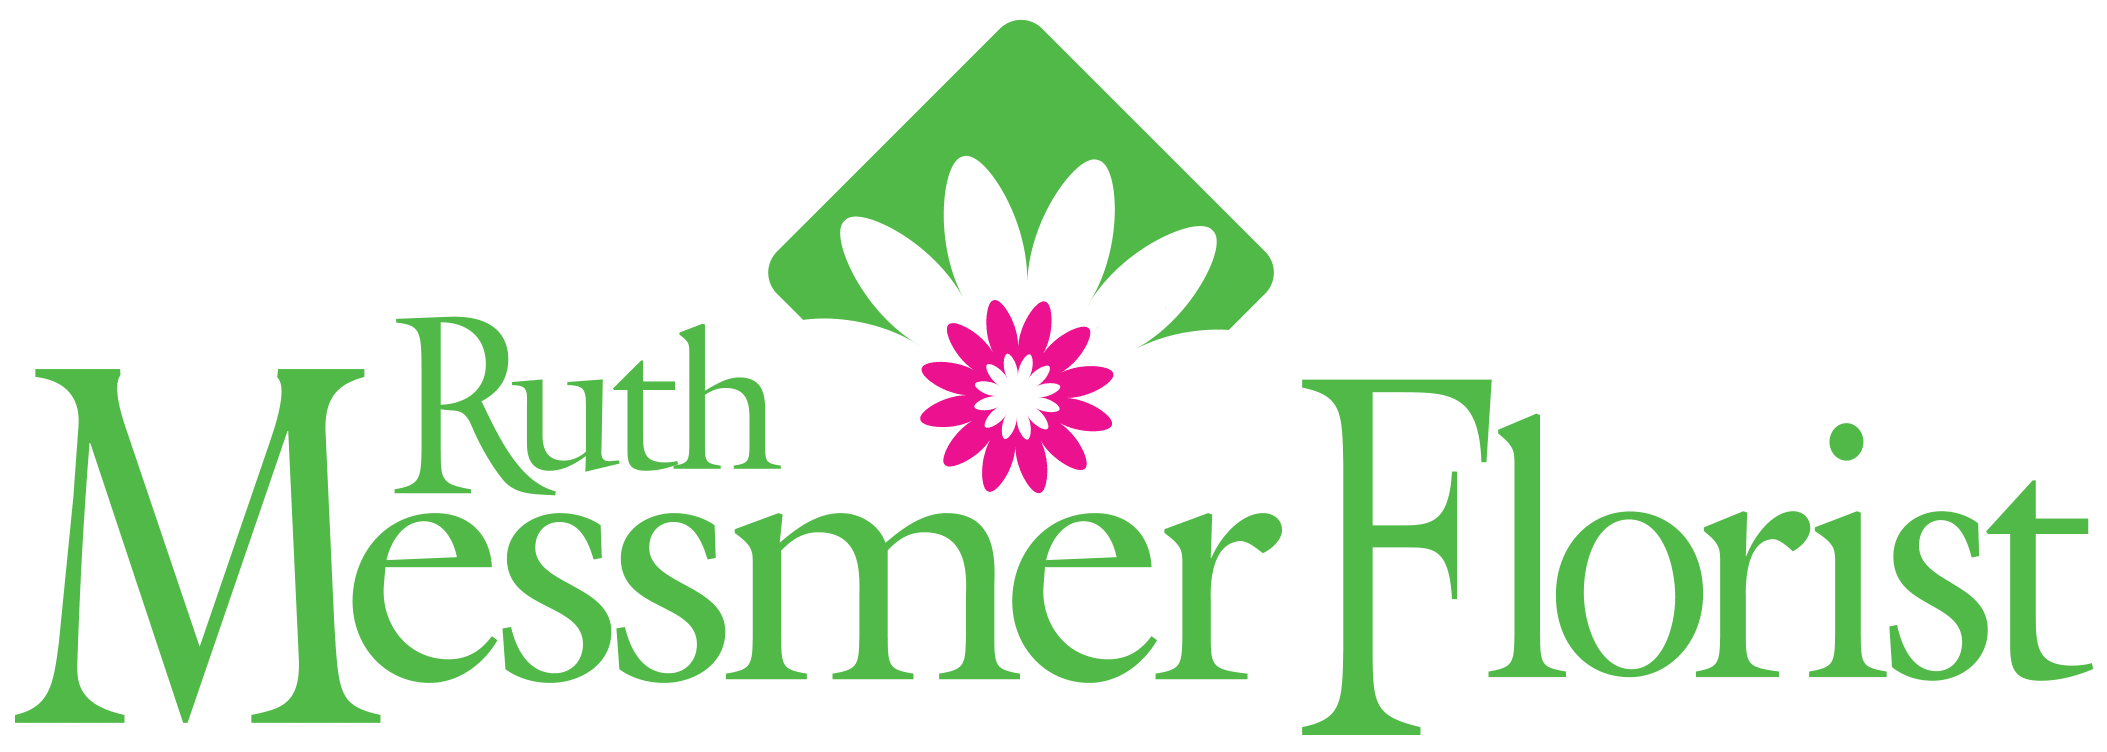 Fort Myers Florist Flower Delivery By Ruth Messmer Florist